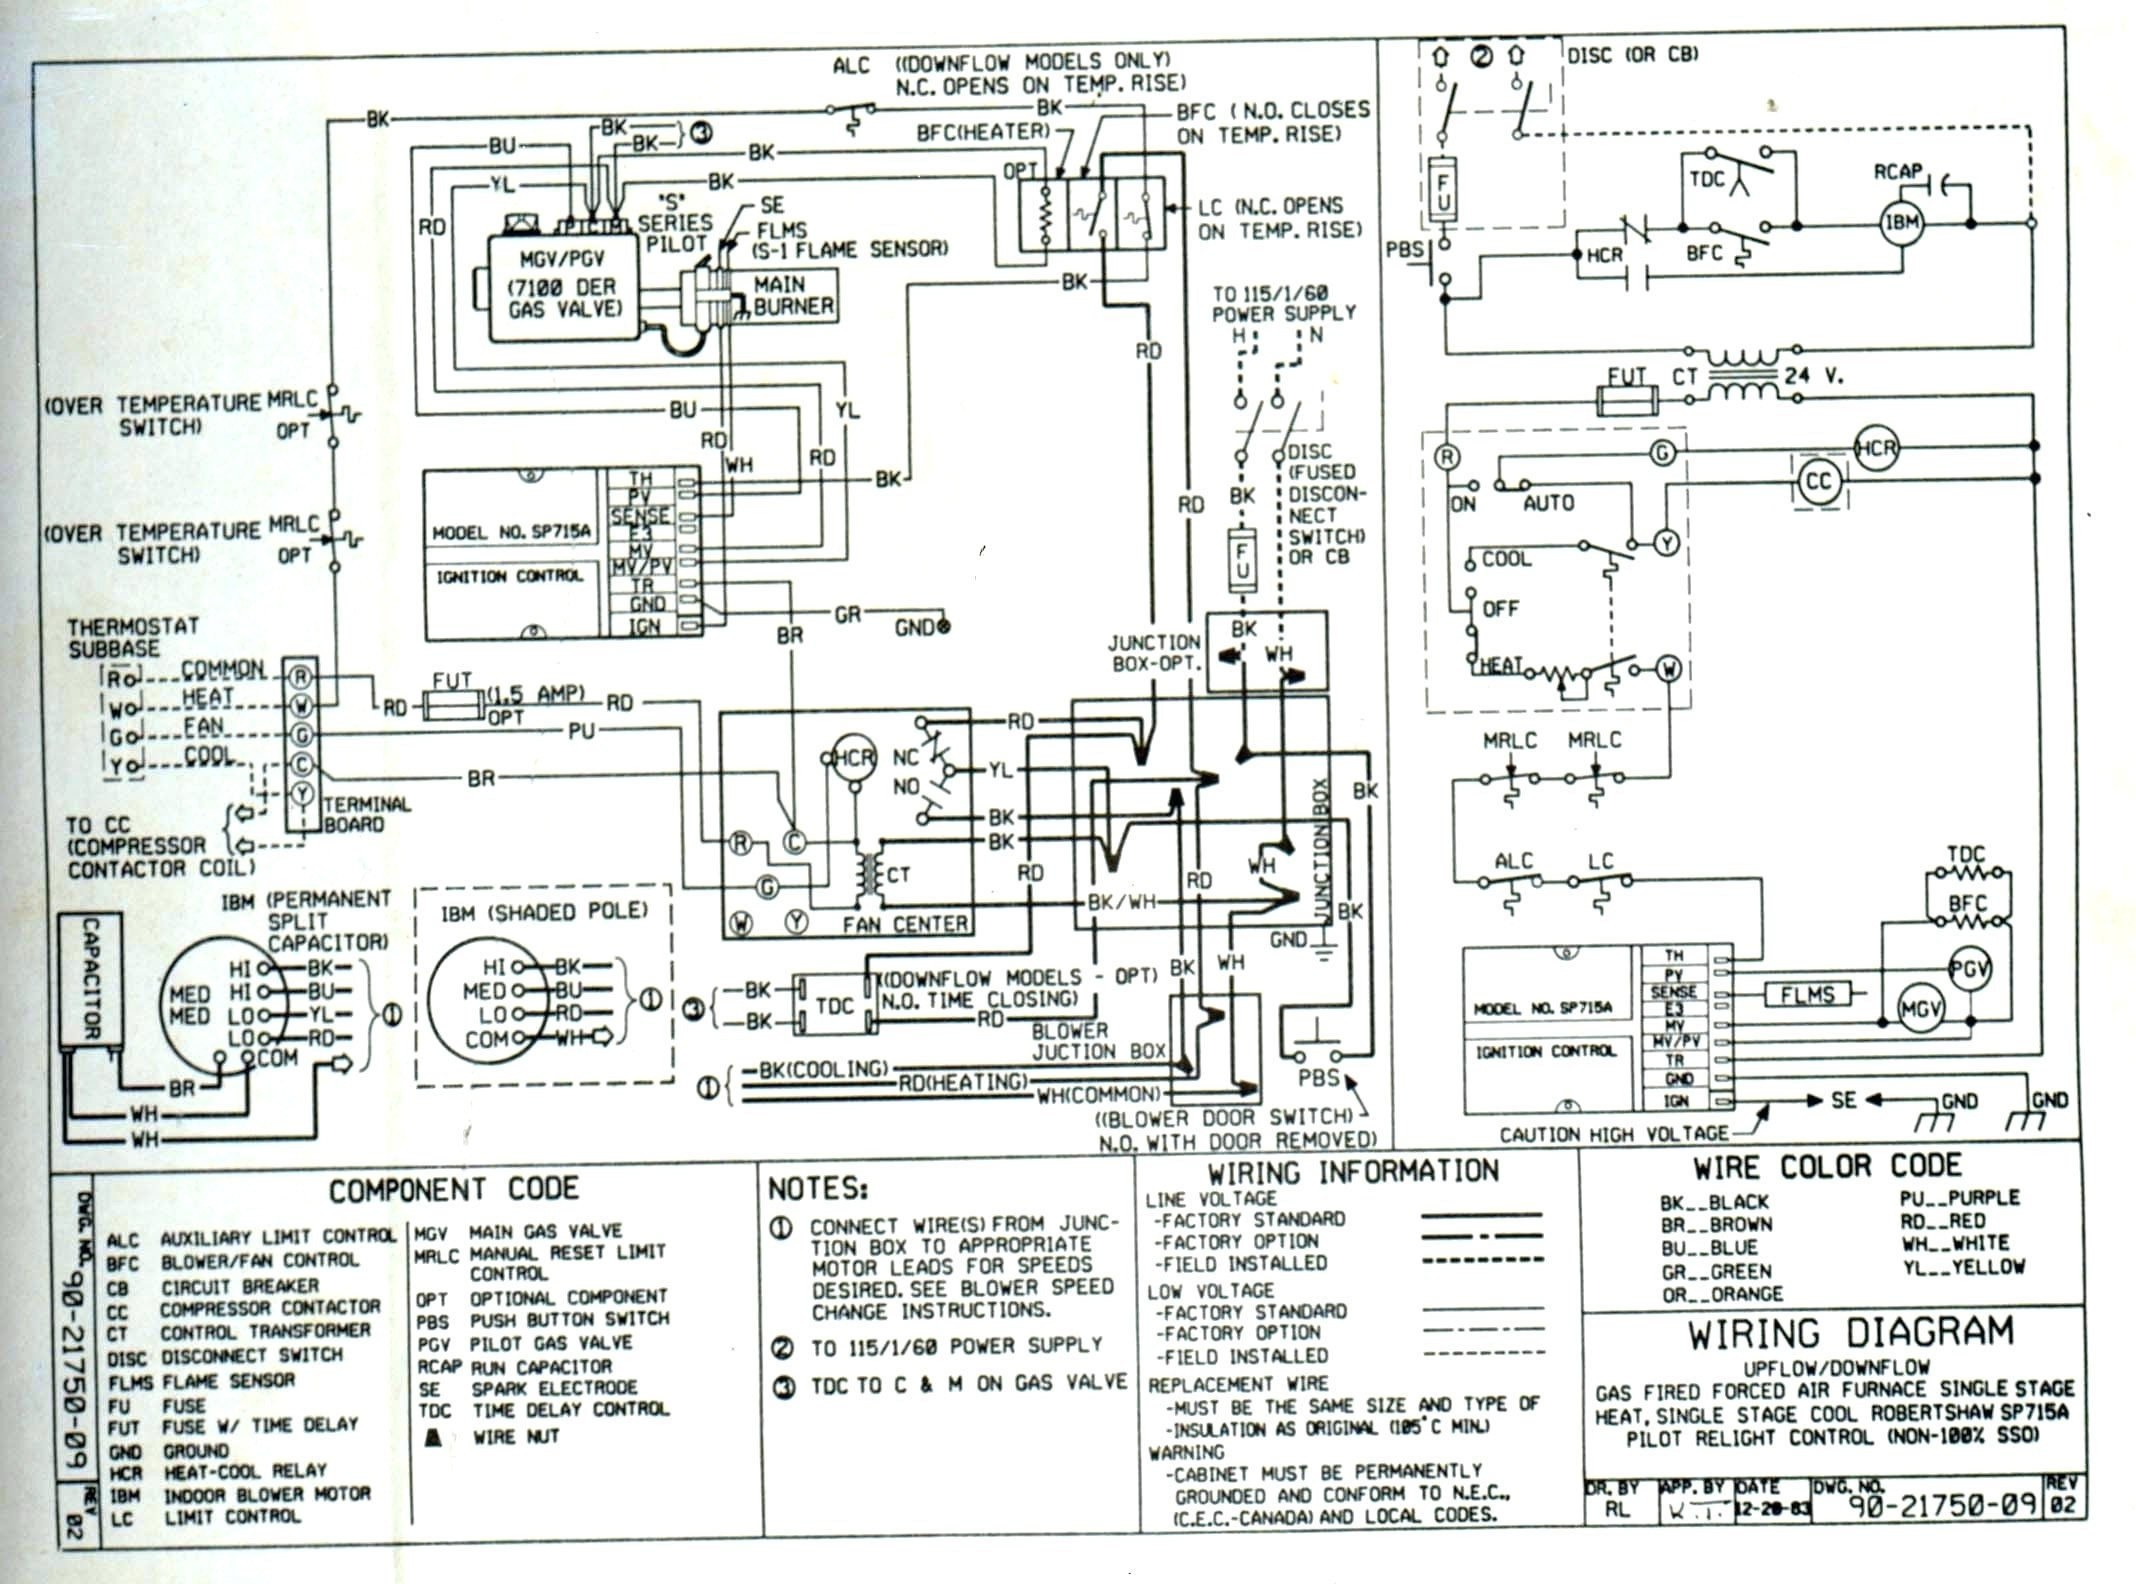 electric heat wiring diagram Collection-Kenworth Ac Wiring Diagram Best Electric Heat Strip Wiring Diagram Beautiful Goodman Air Handler Ac 11-n